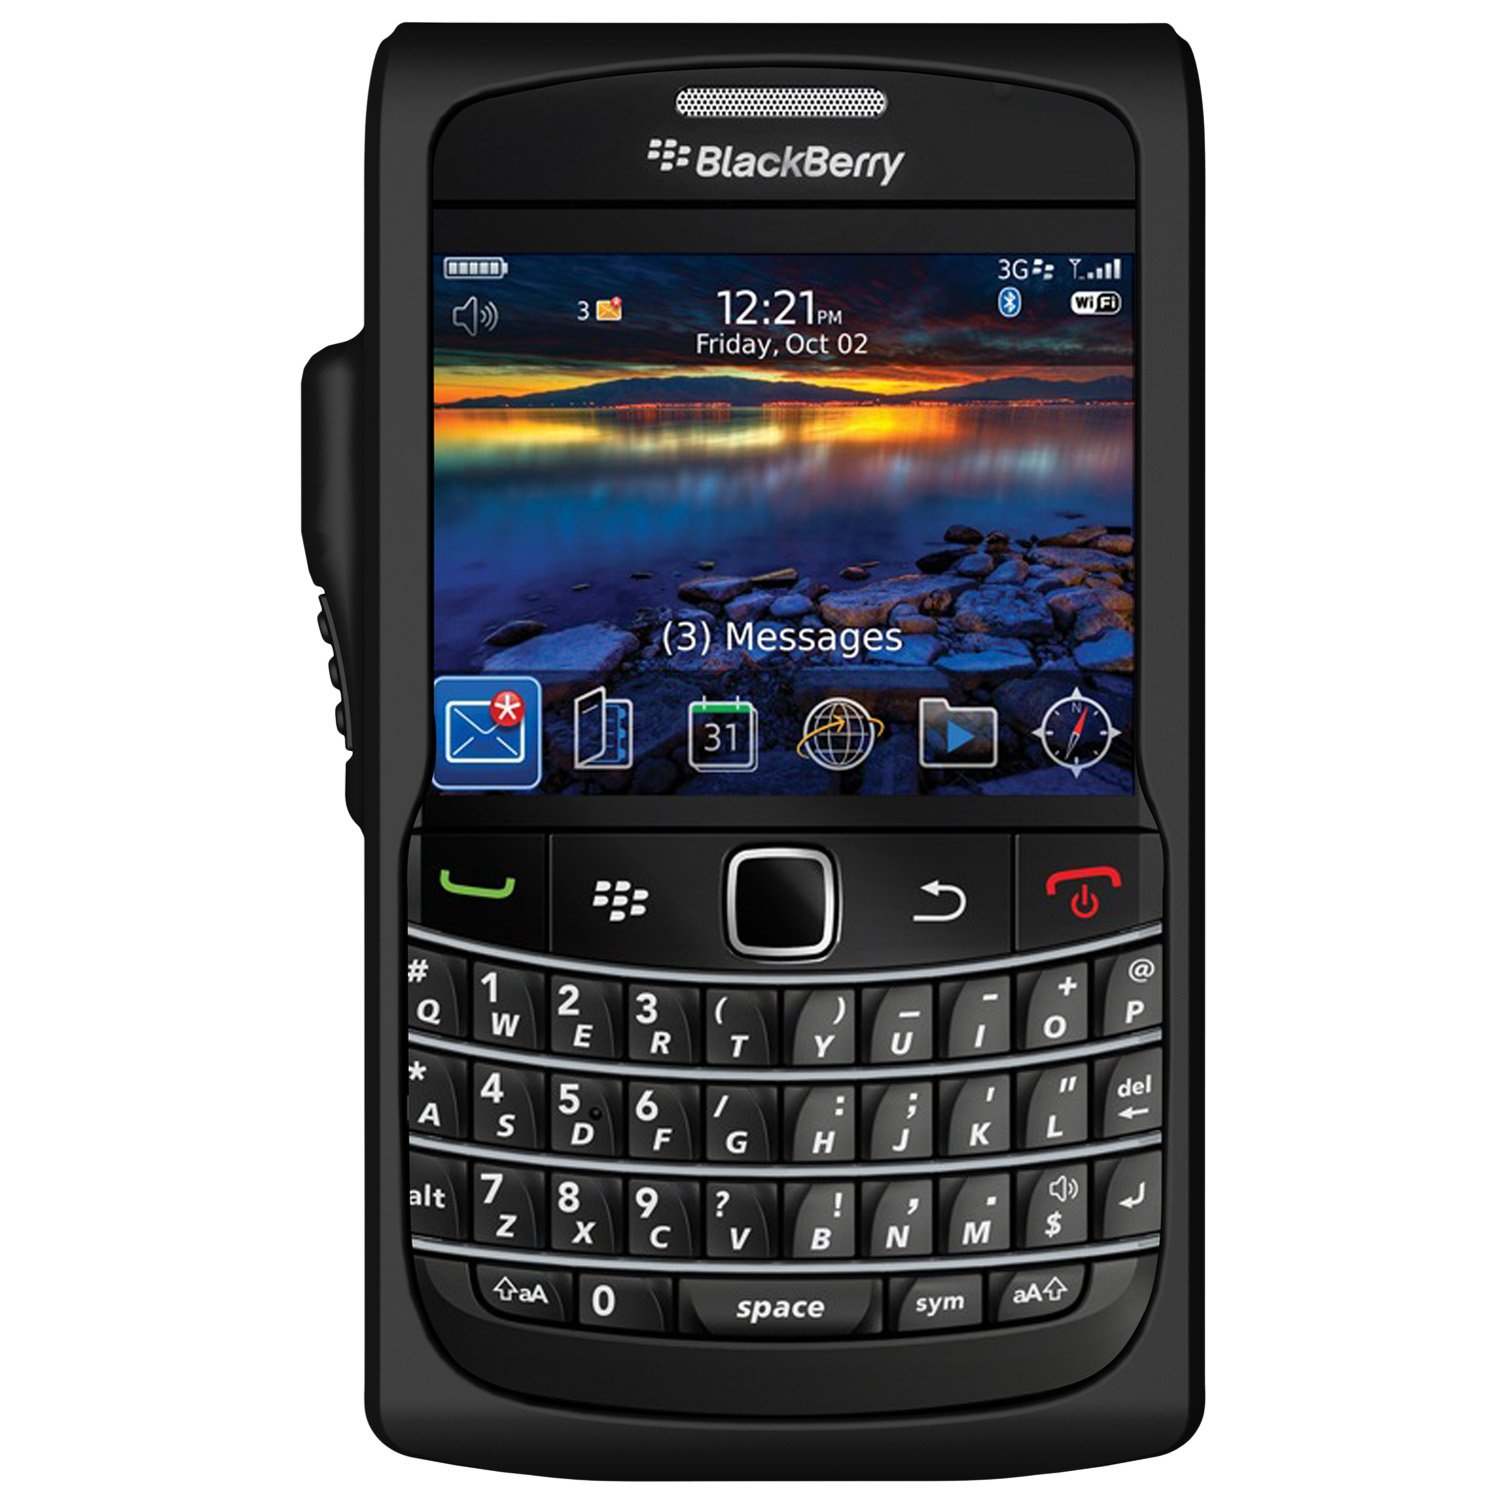 Amazon powerskin battery case for blackberry 85208530 amazon powerskin battery case for blackberry 85208530 black cell phones accessories buycottarizona